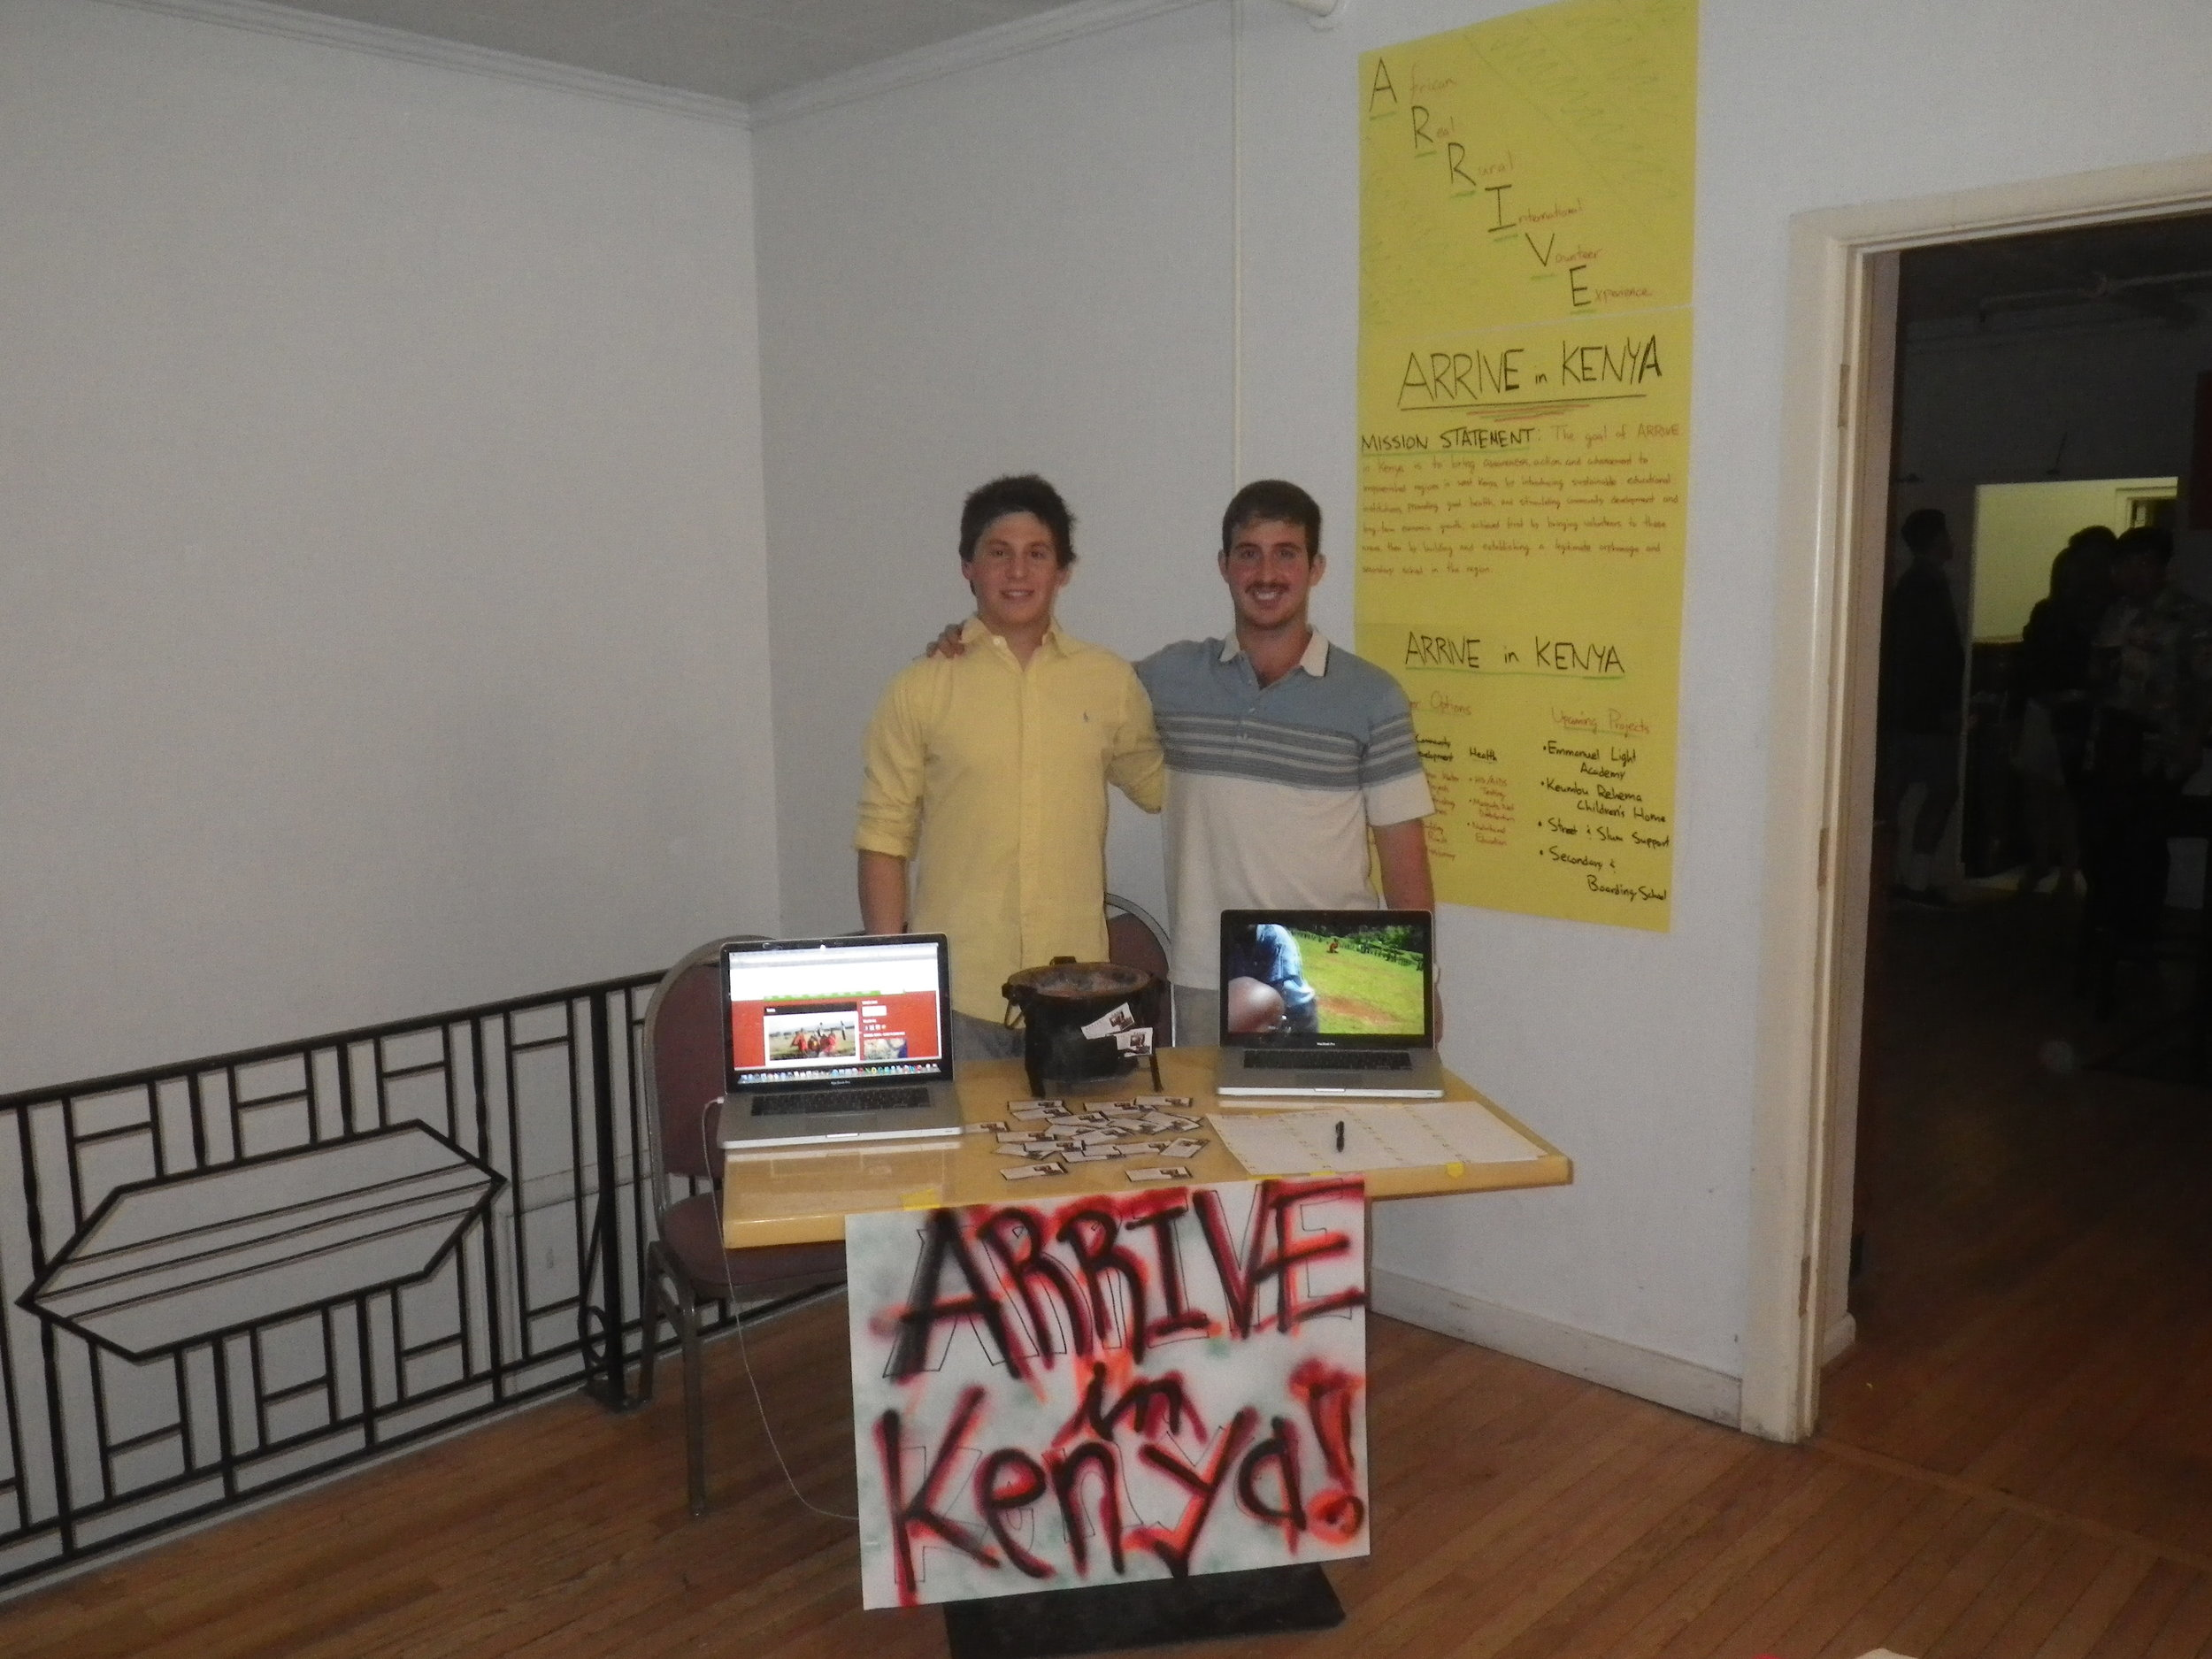 Brian Ash (left) and Davide Ippolito (right) at the ARRIVE in Kenya information booth.